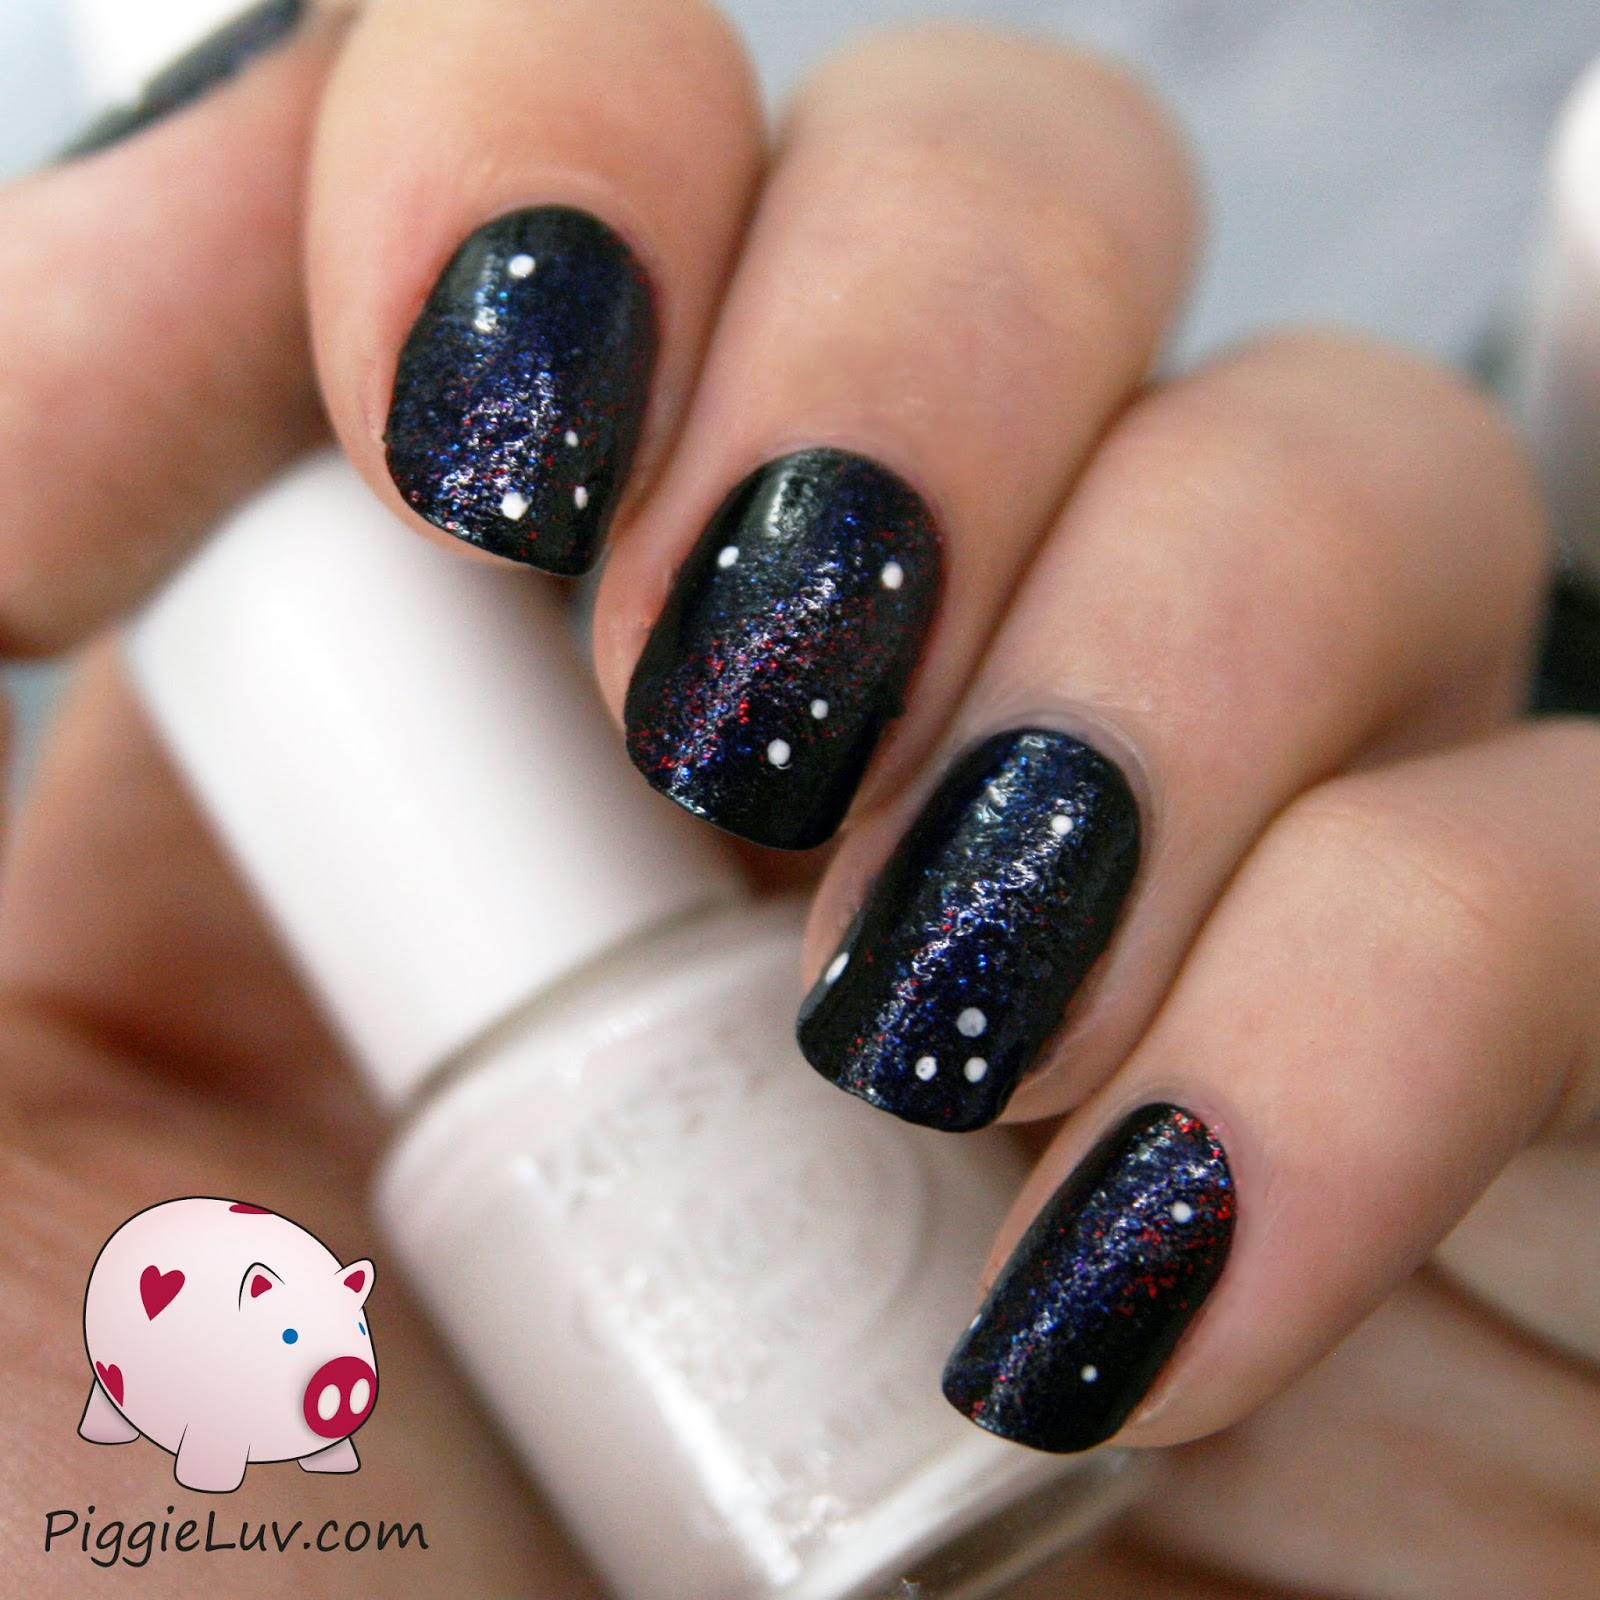 Piggieluv galaxy nails with kiss nail art kit galaxy nails with kiss nail art kit prinsesfo Image collections